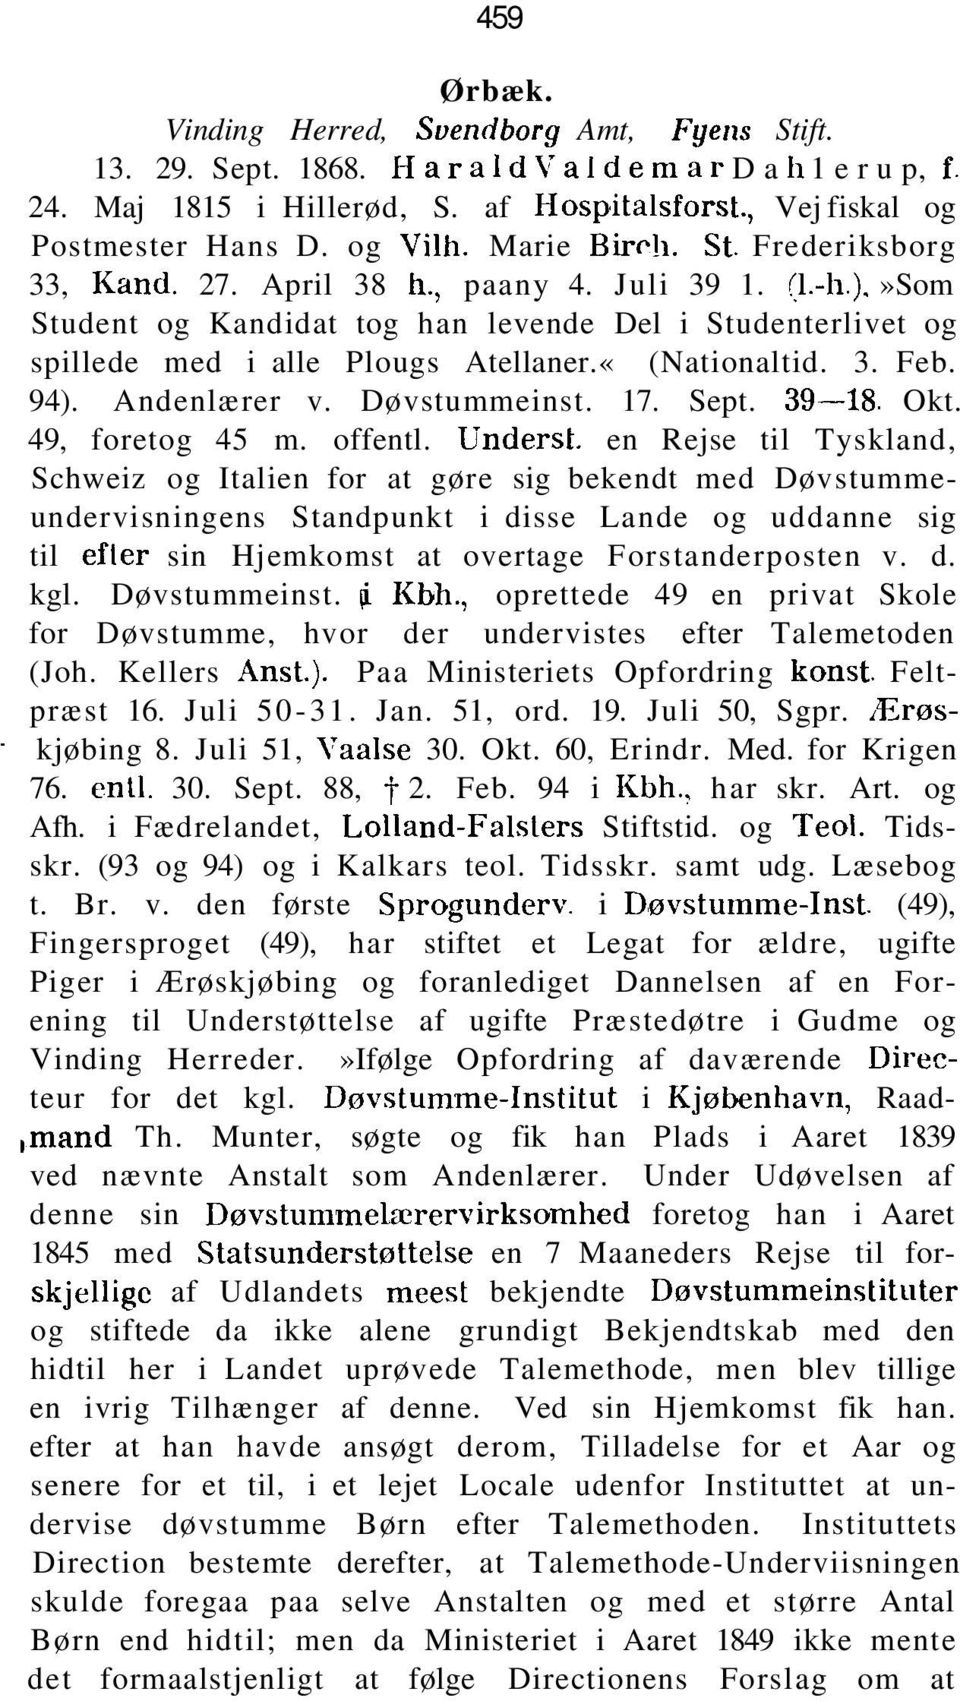 «(Nationaltid. 3. Feb. 94). Andenlærer v. Døvstummeinst. 17. Sept. 39 18. Okt. 49, foretog 45 m. offentl.